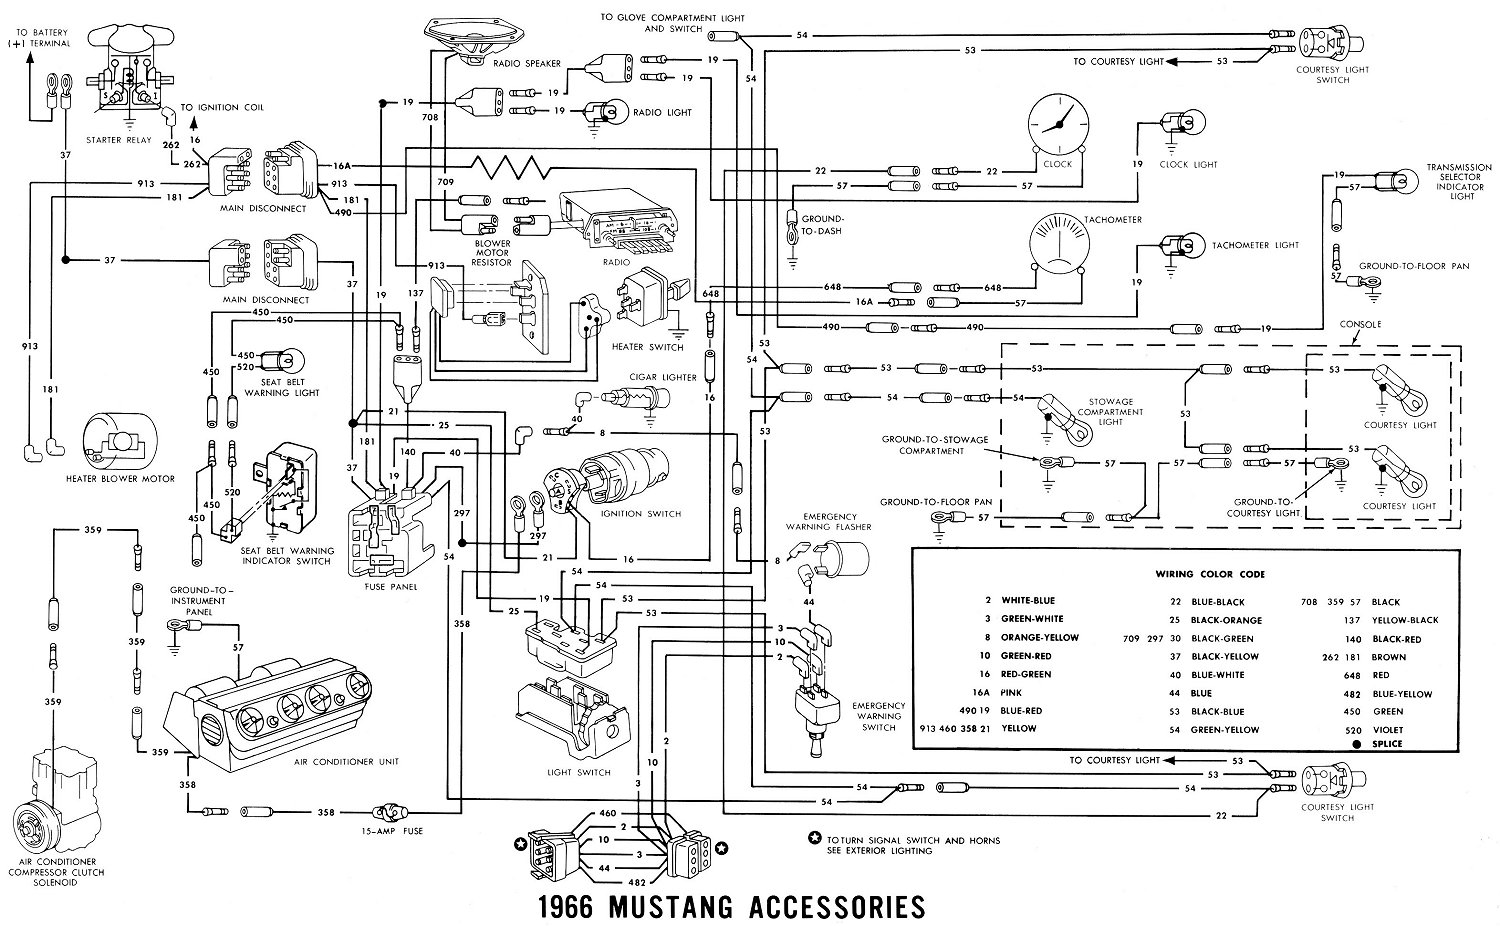 66acces1 1966 mustang wiring diagrams average joe restoration 2013 ford wiring diagram at crackthecode.co